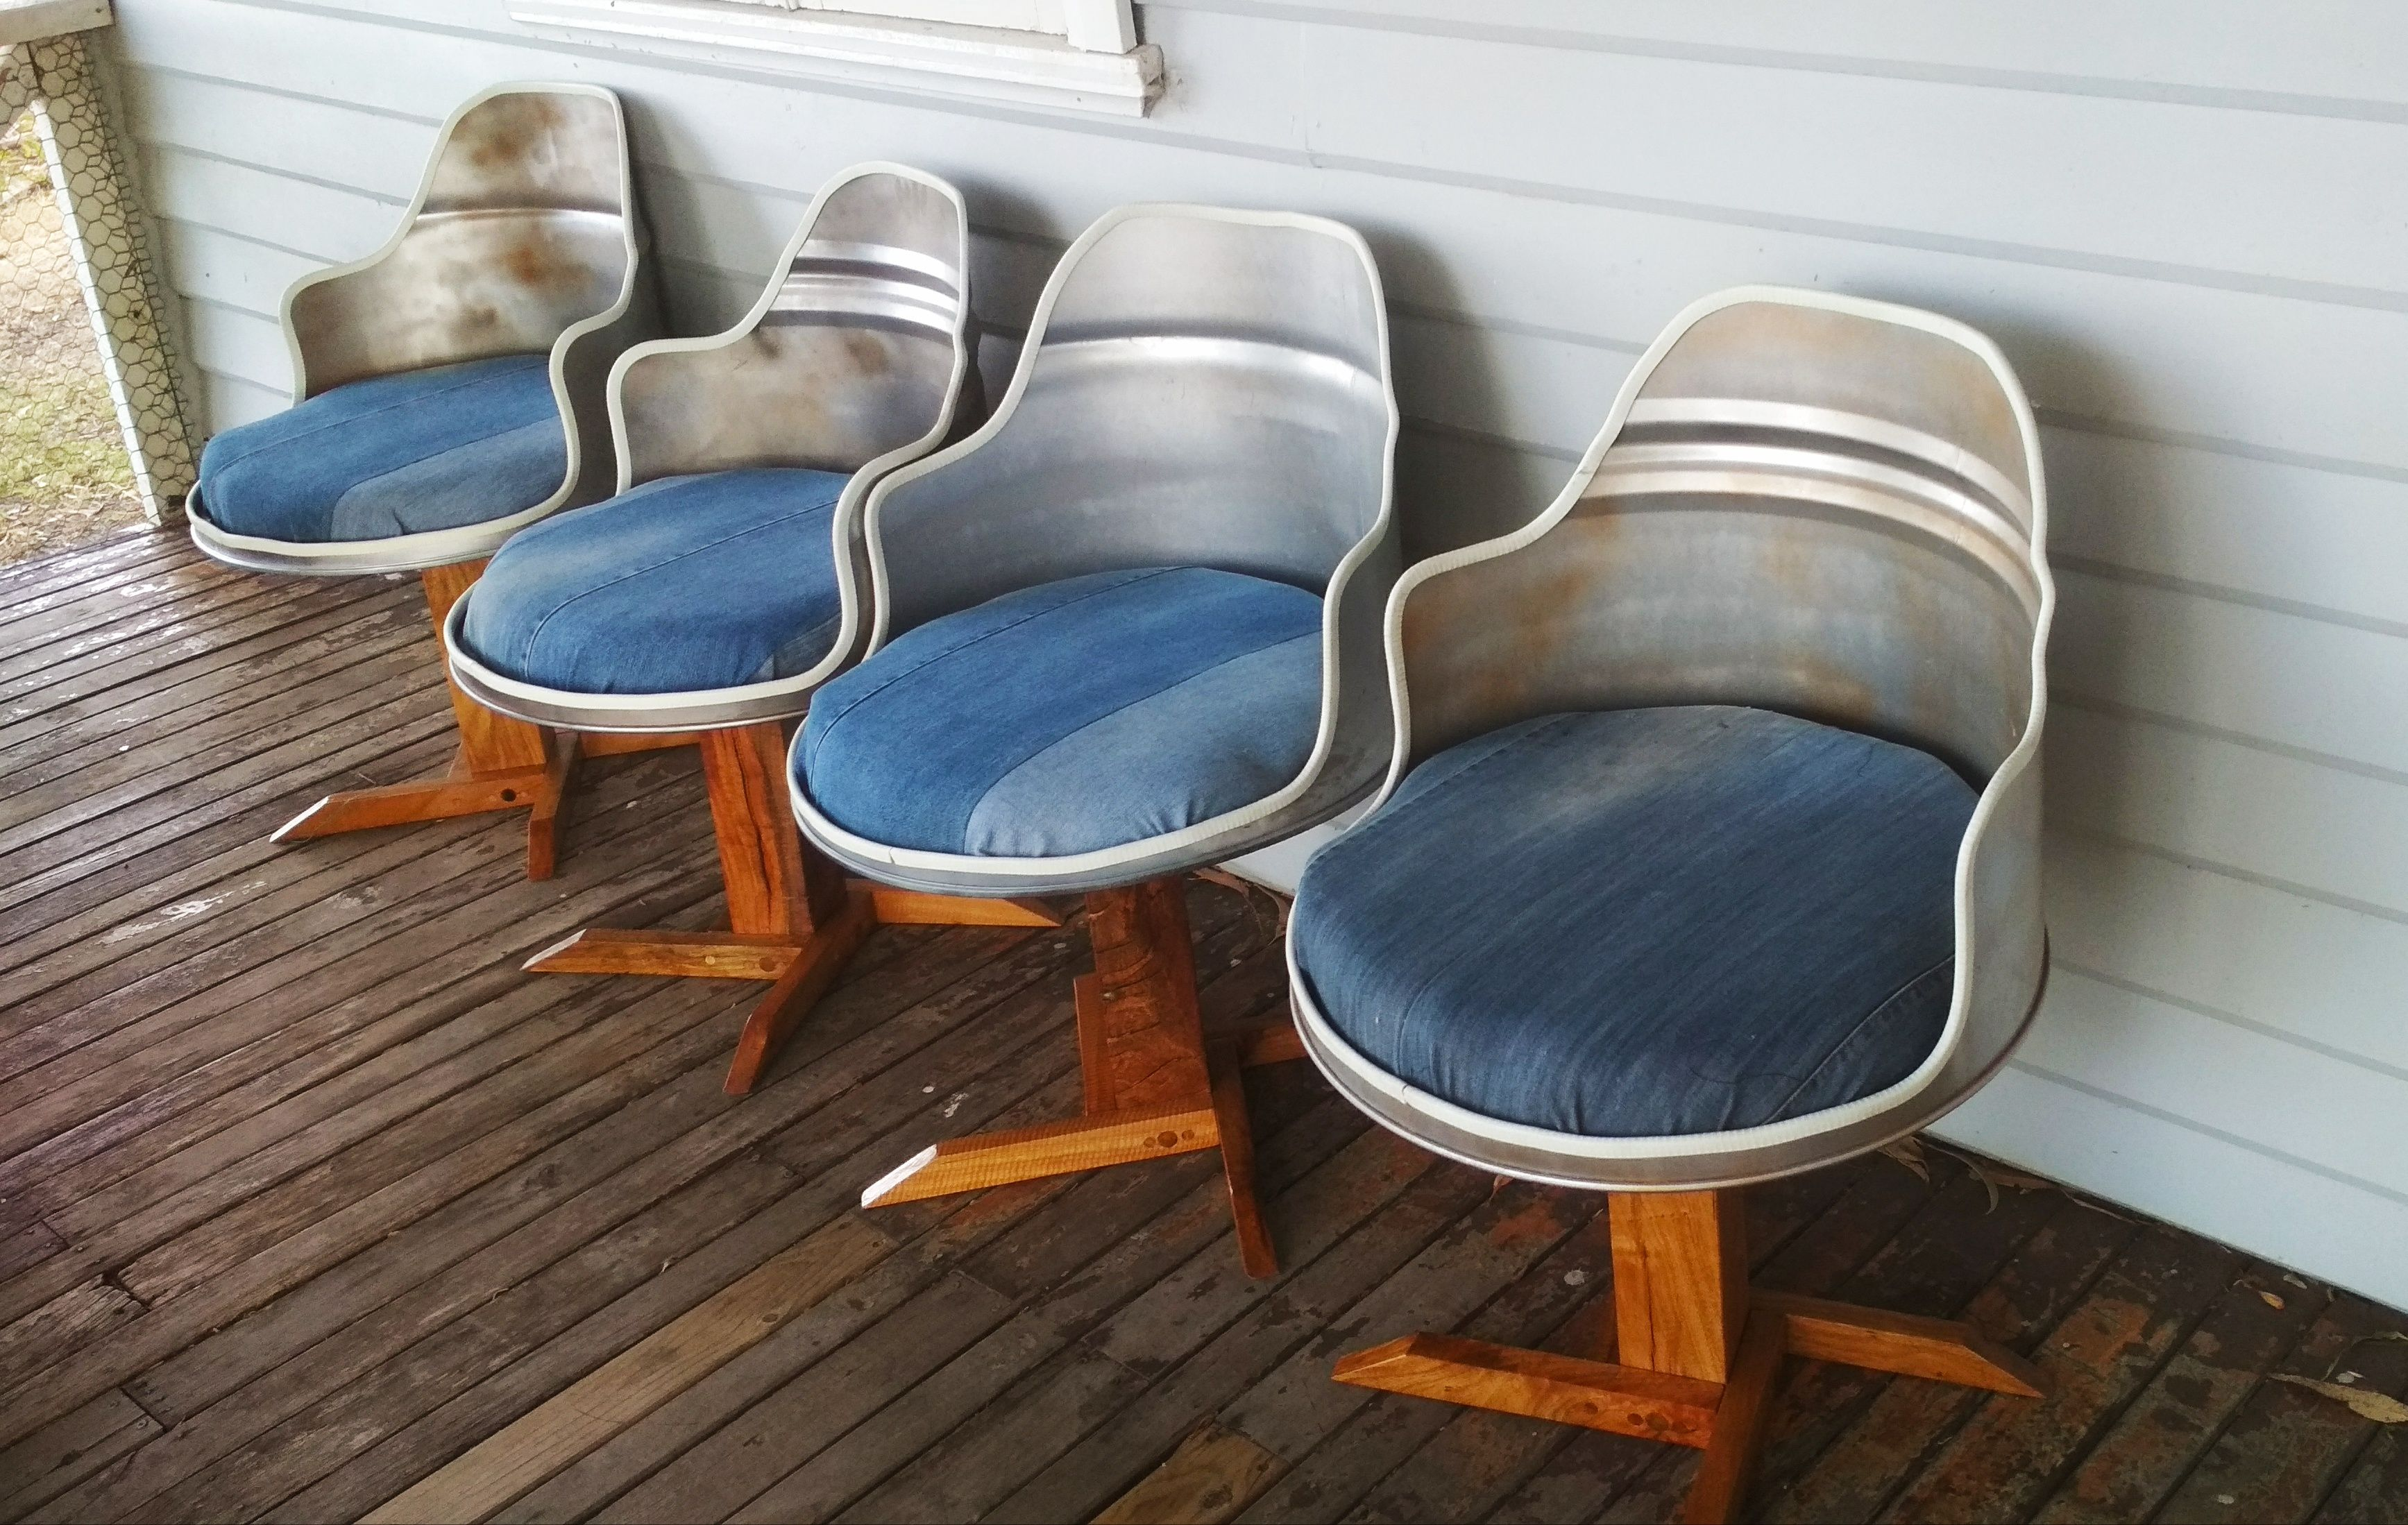 Etonnant 44 Gallon Drum Chairs My New Product Line! The Drum Chairs. A Must In